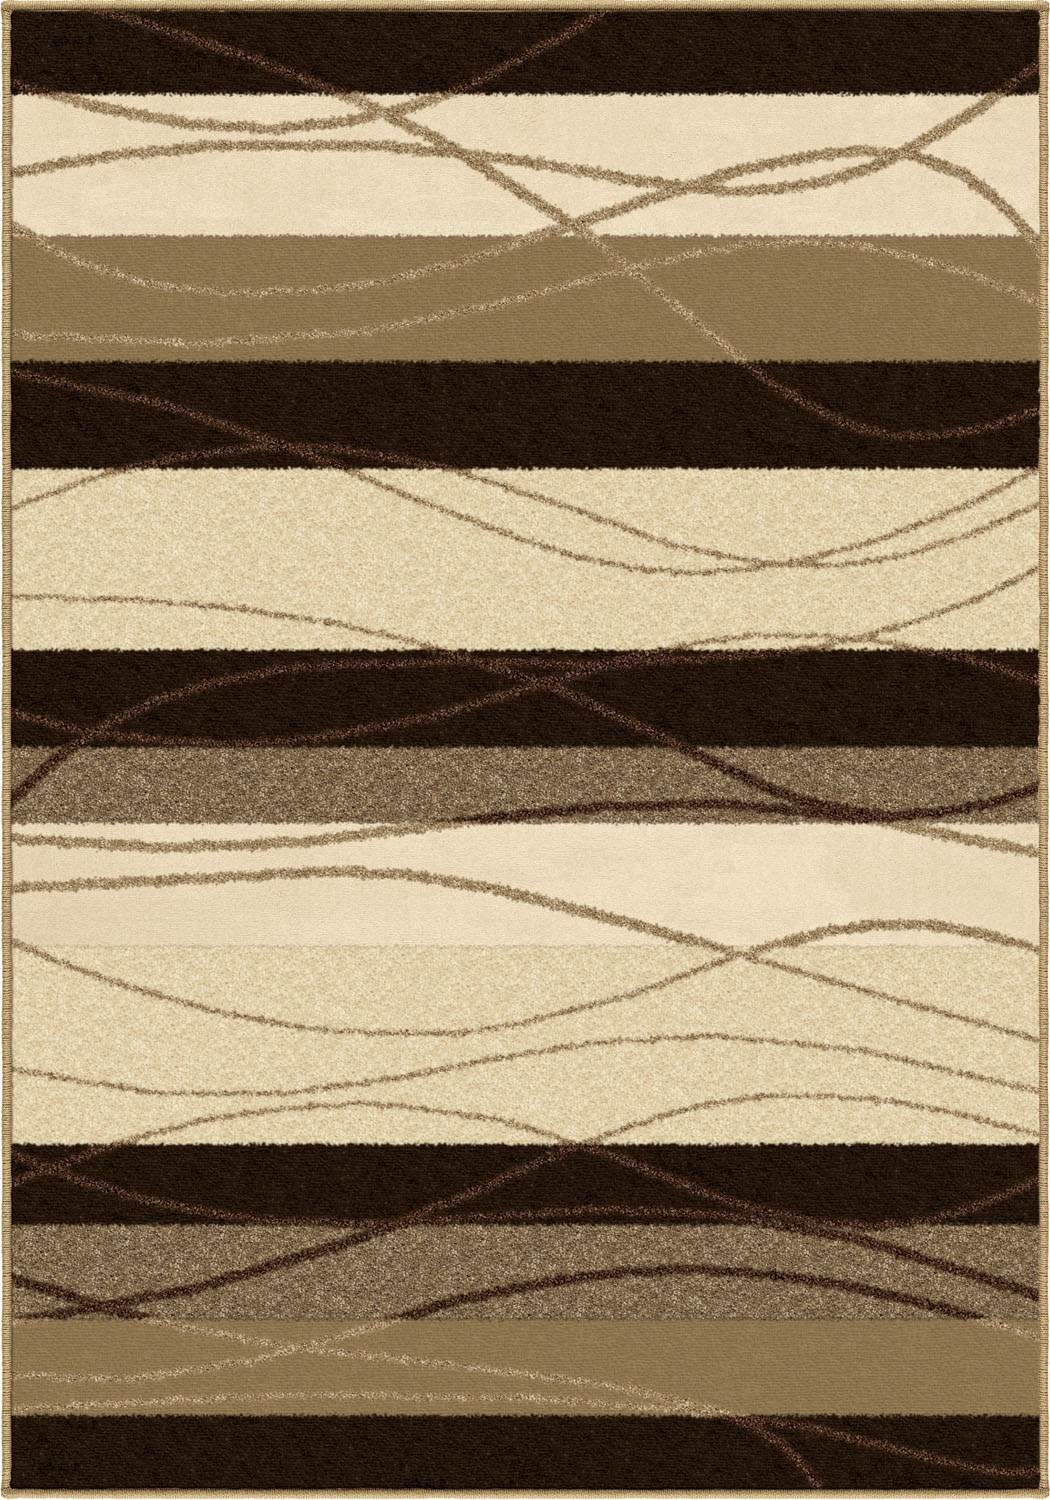 Four Seasons 1801 Tonal Stripe Rug By Orian Rugs For Chic Floor Decor Ideas